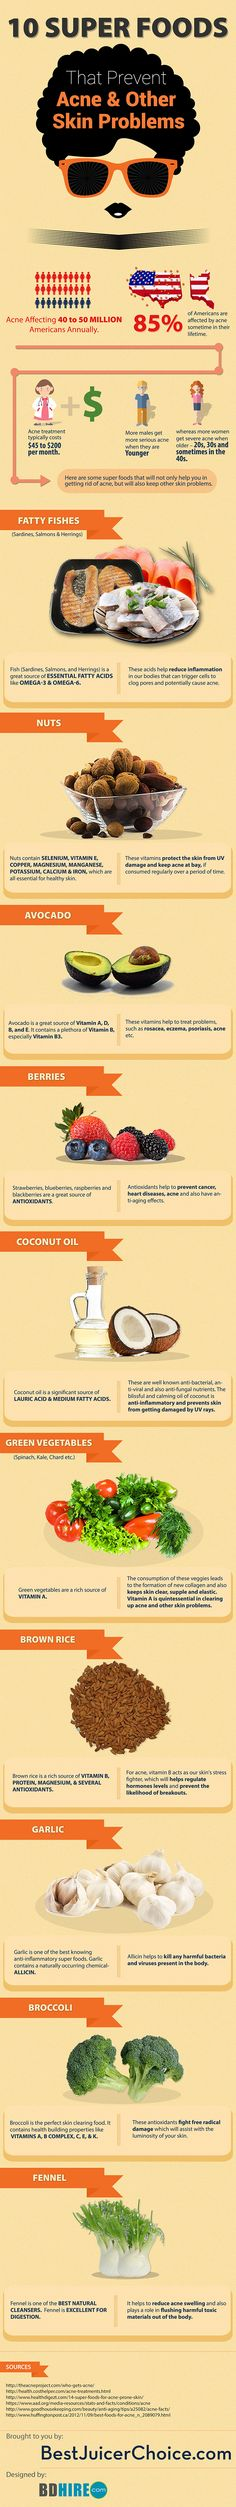 10 Super Foods That Prevent Acne & Other Skin Problems. #Infographic